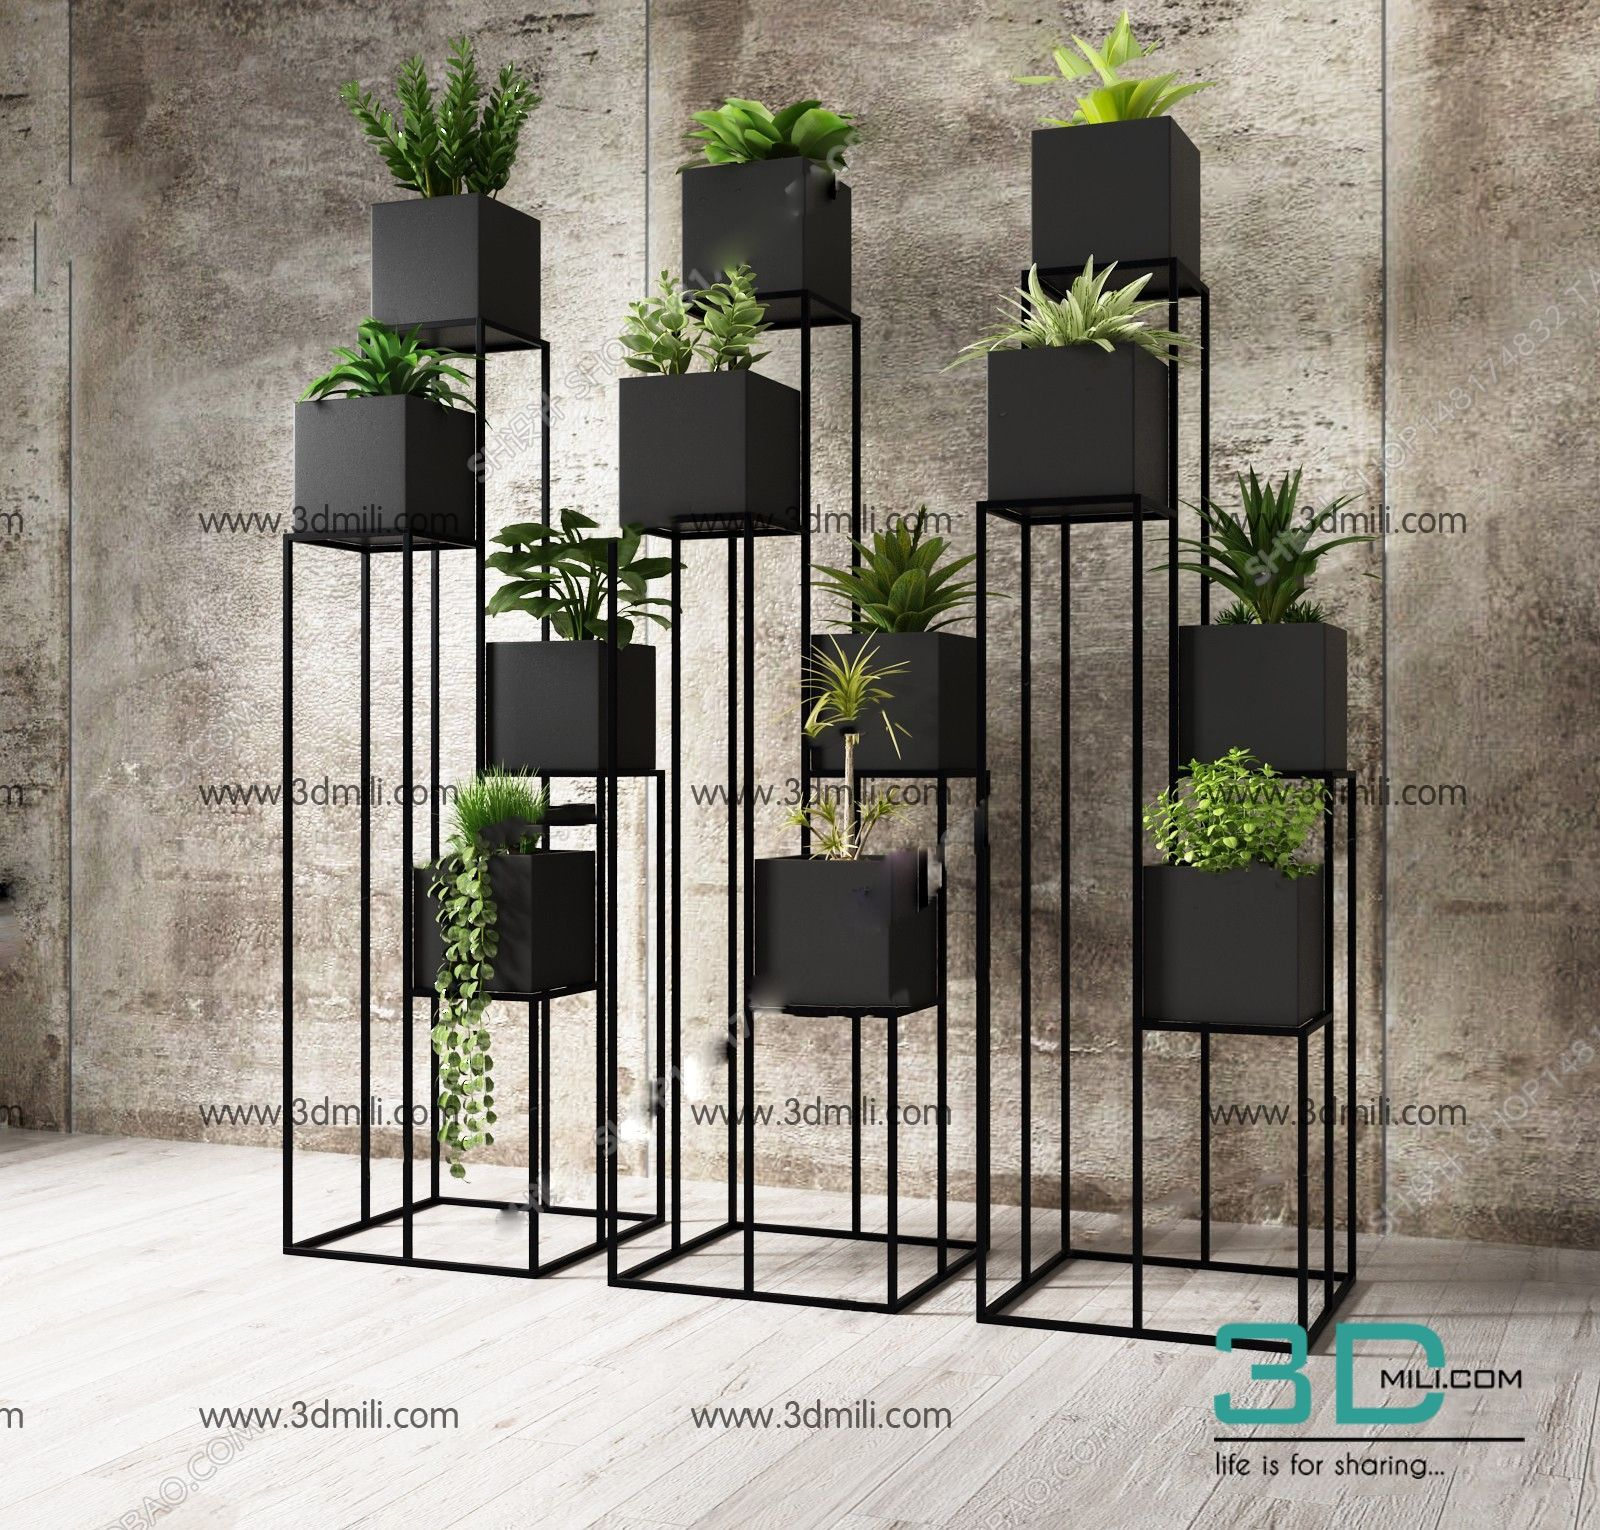 315. Plant 3dsmax Model Free Download Home decor, Decor